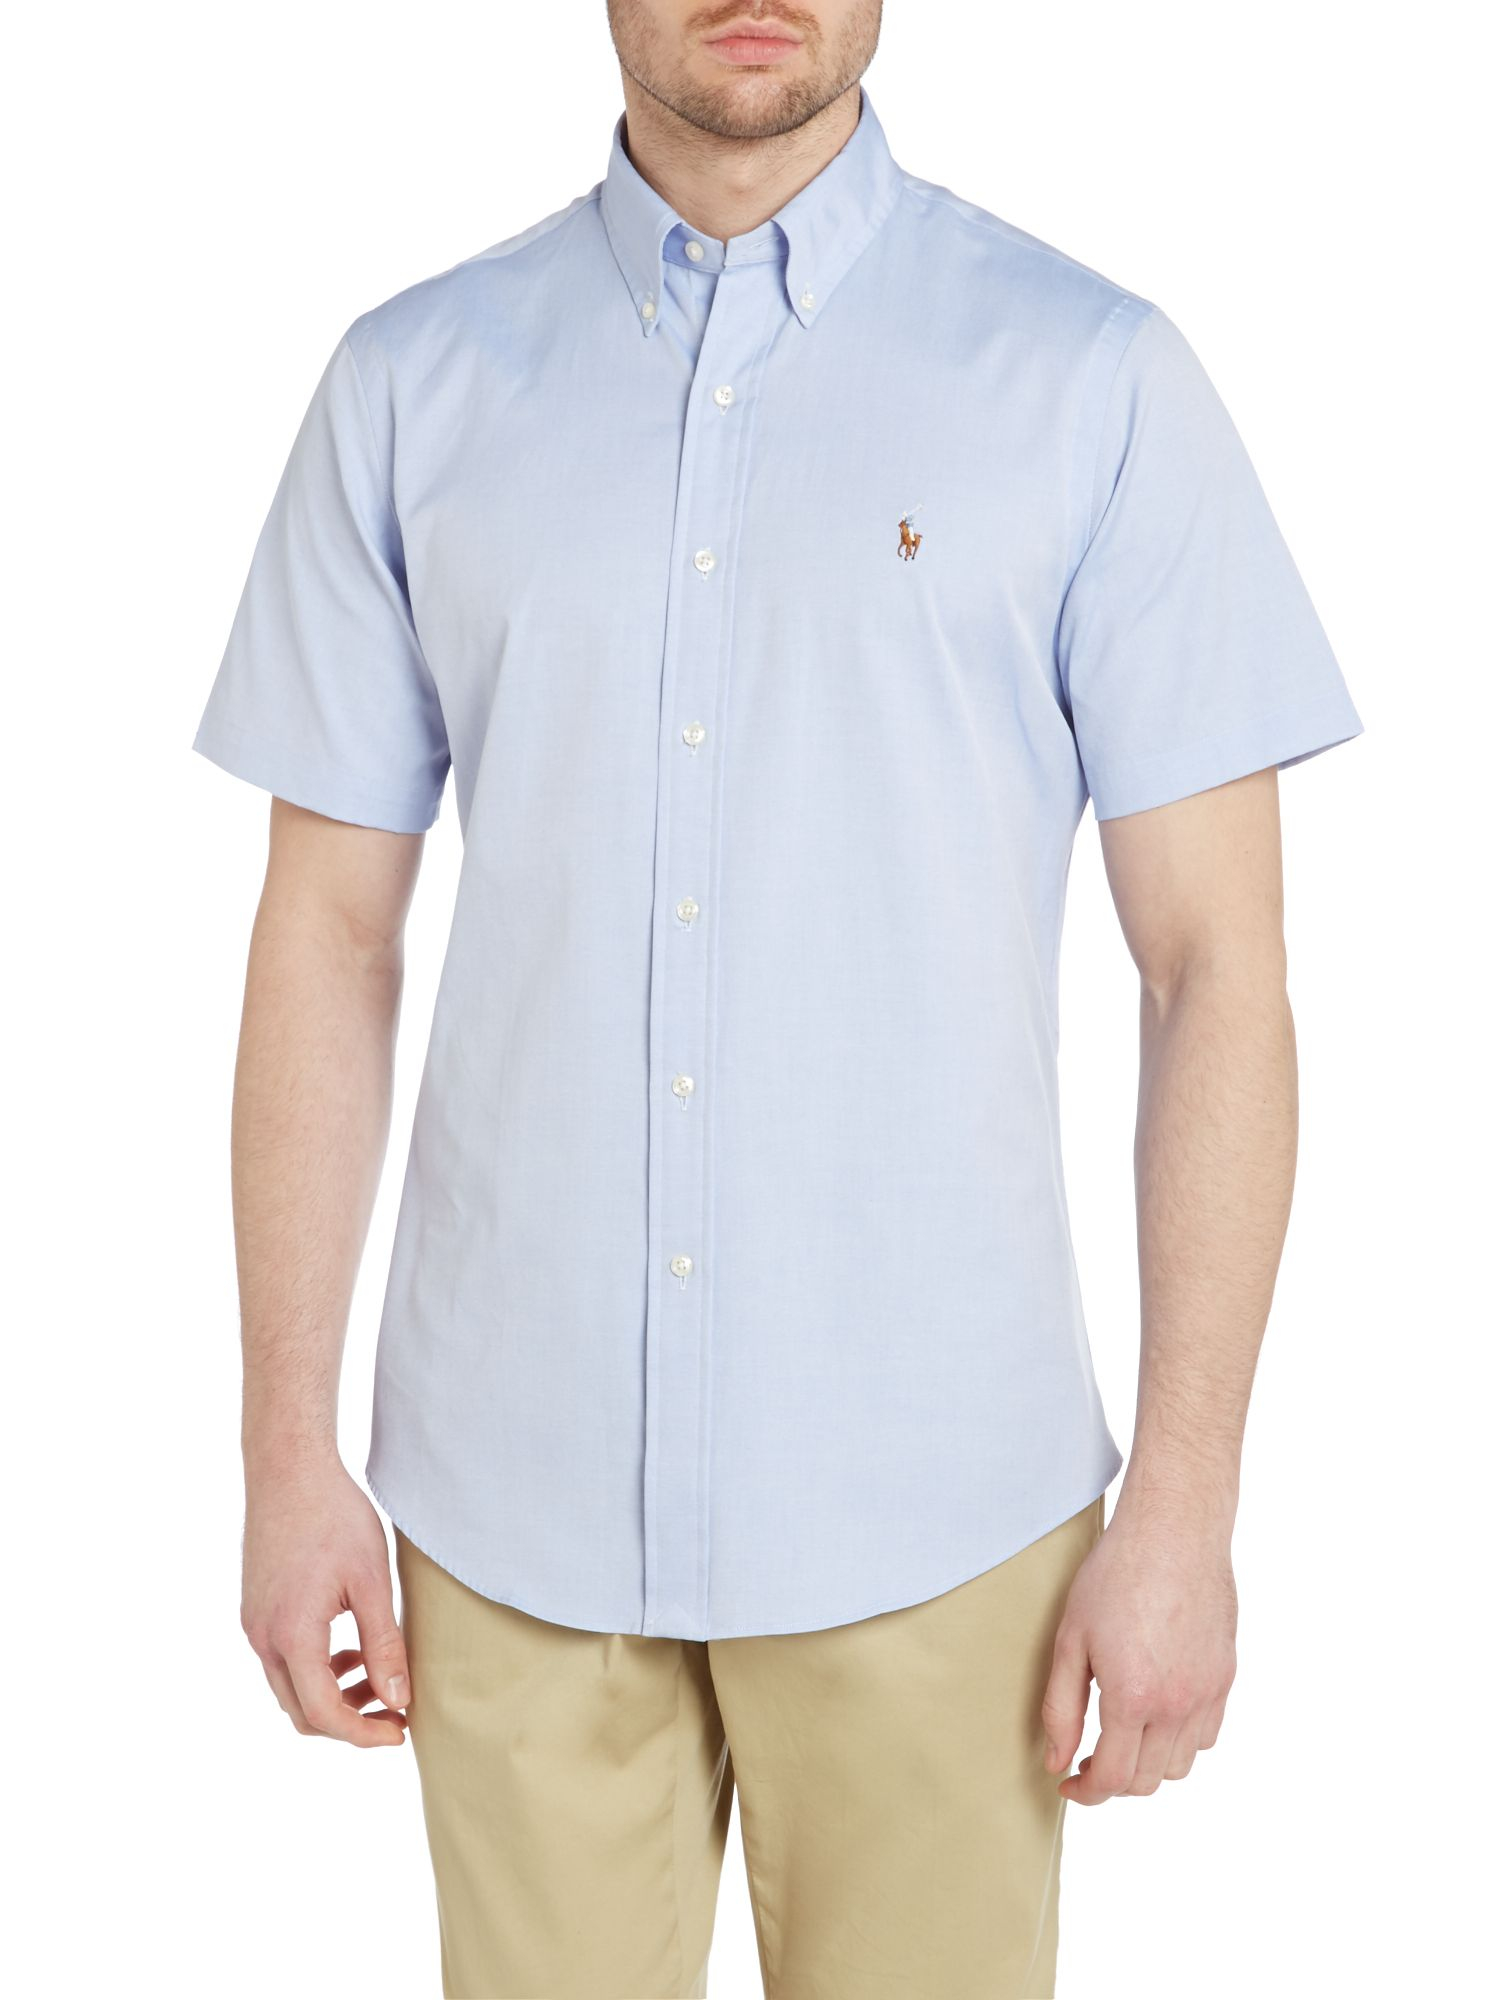 Polo Ralph Lauren Classic Short Sleeve Custom Fit Oxford